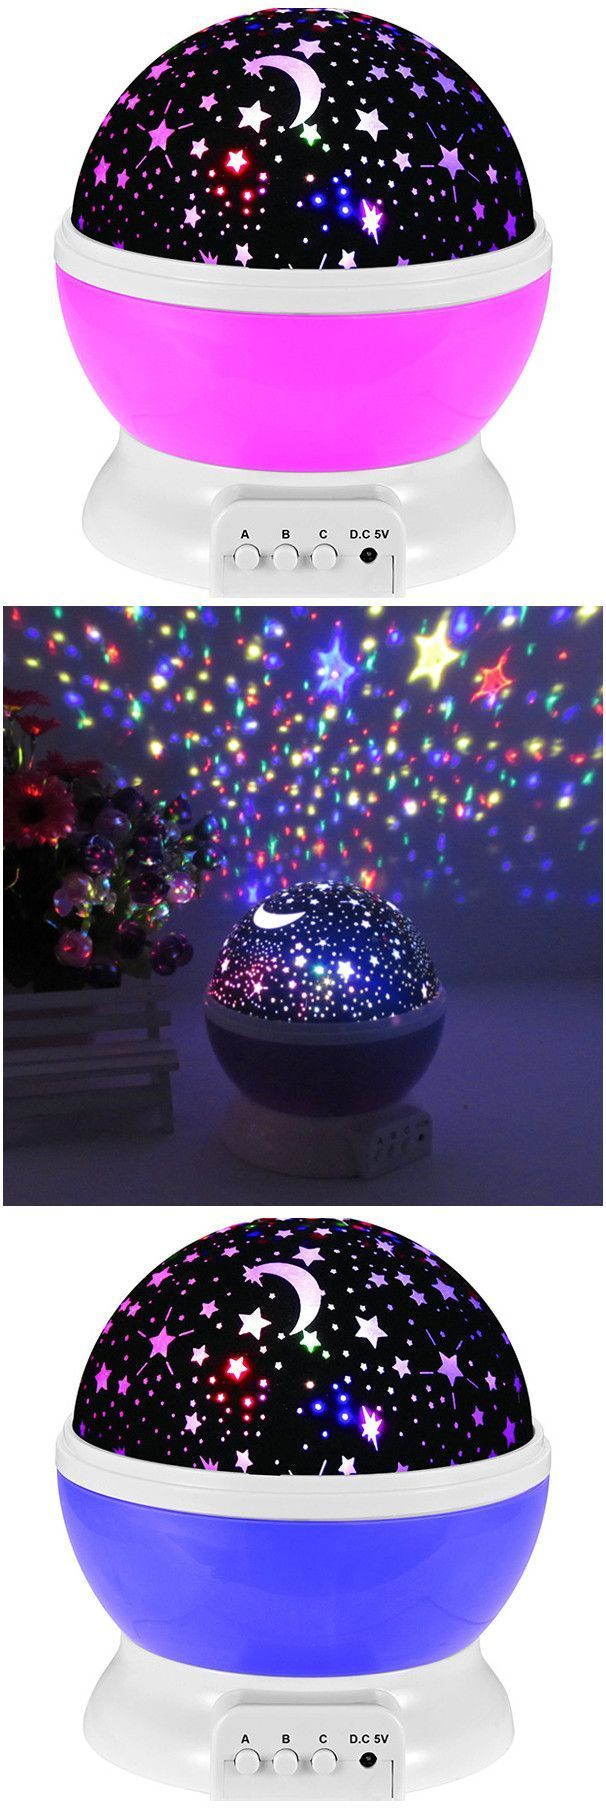 $10.97 Mew Starry Sky Babysbreath Autorotation LED Night Light:http://purefav.com/best-toys-2016